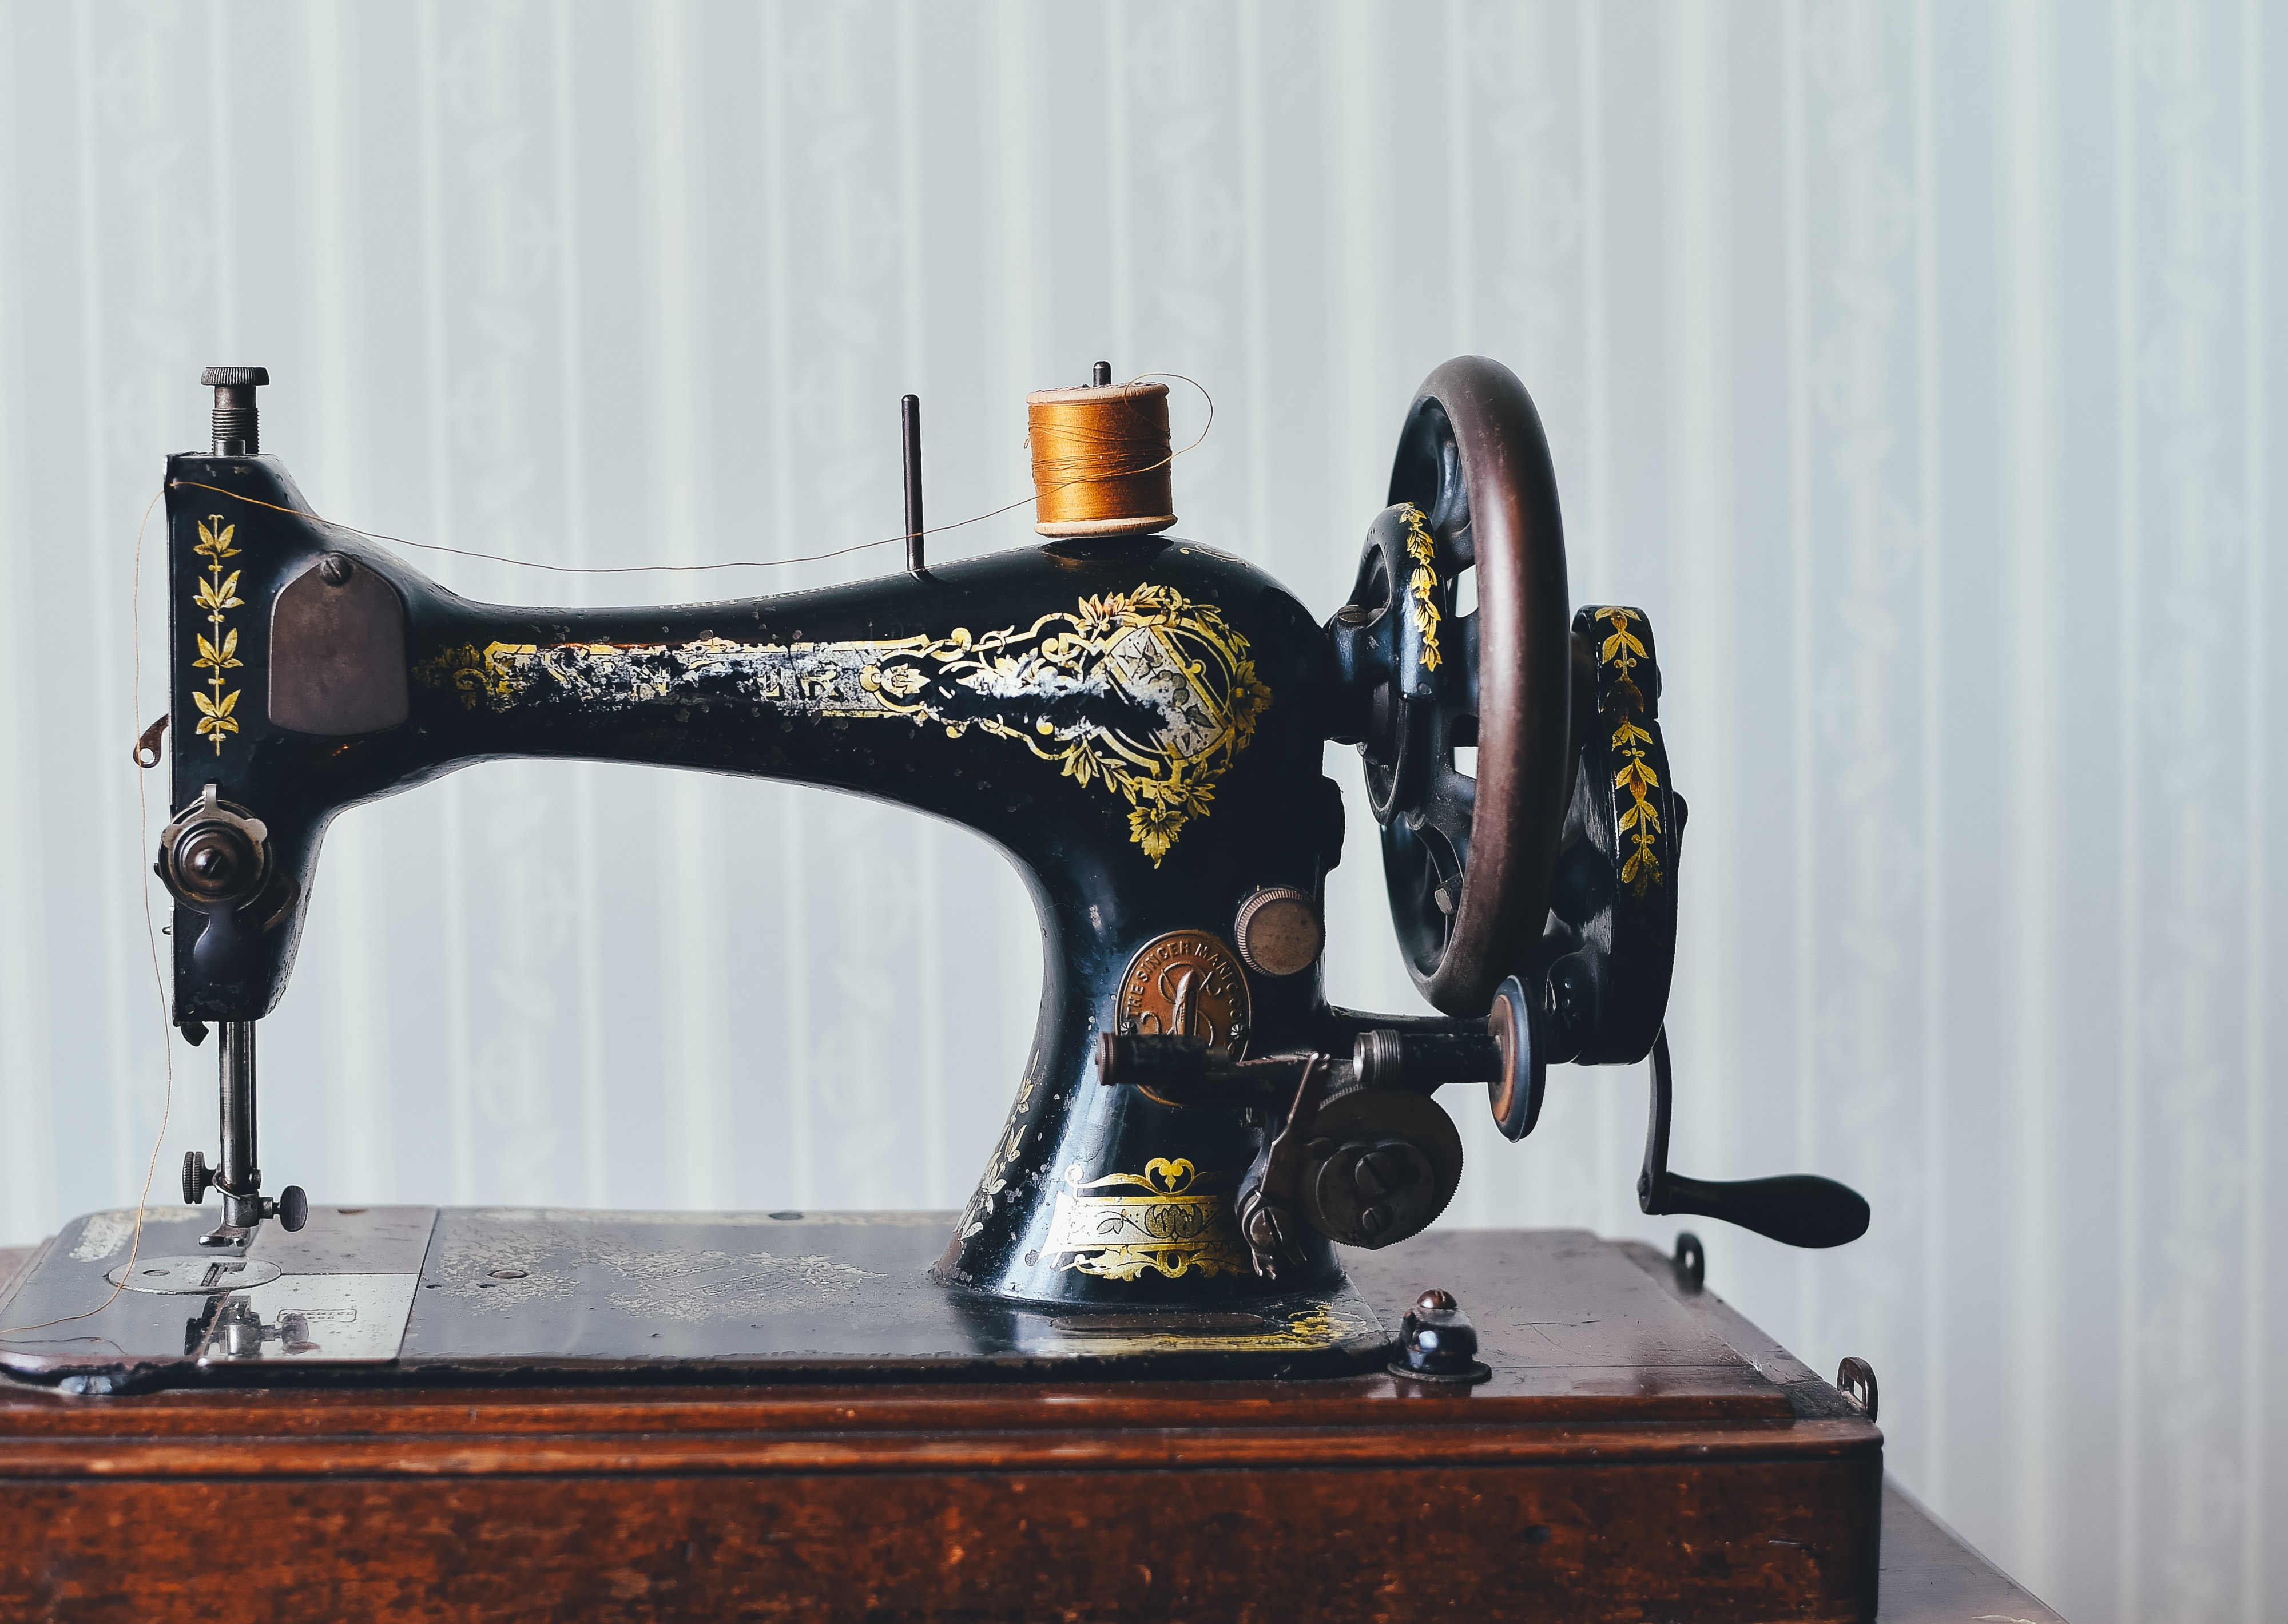 black and yellow metal sewing machine